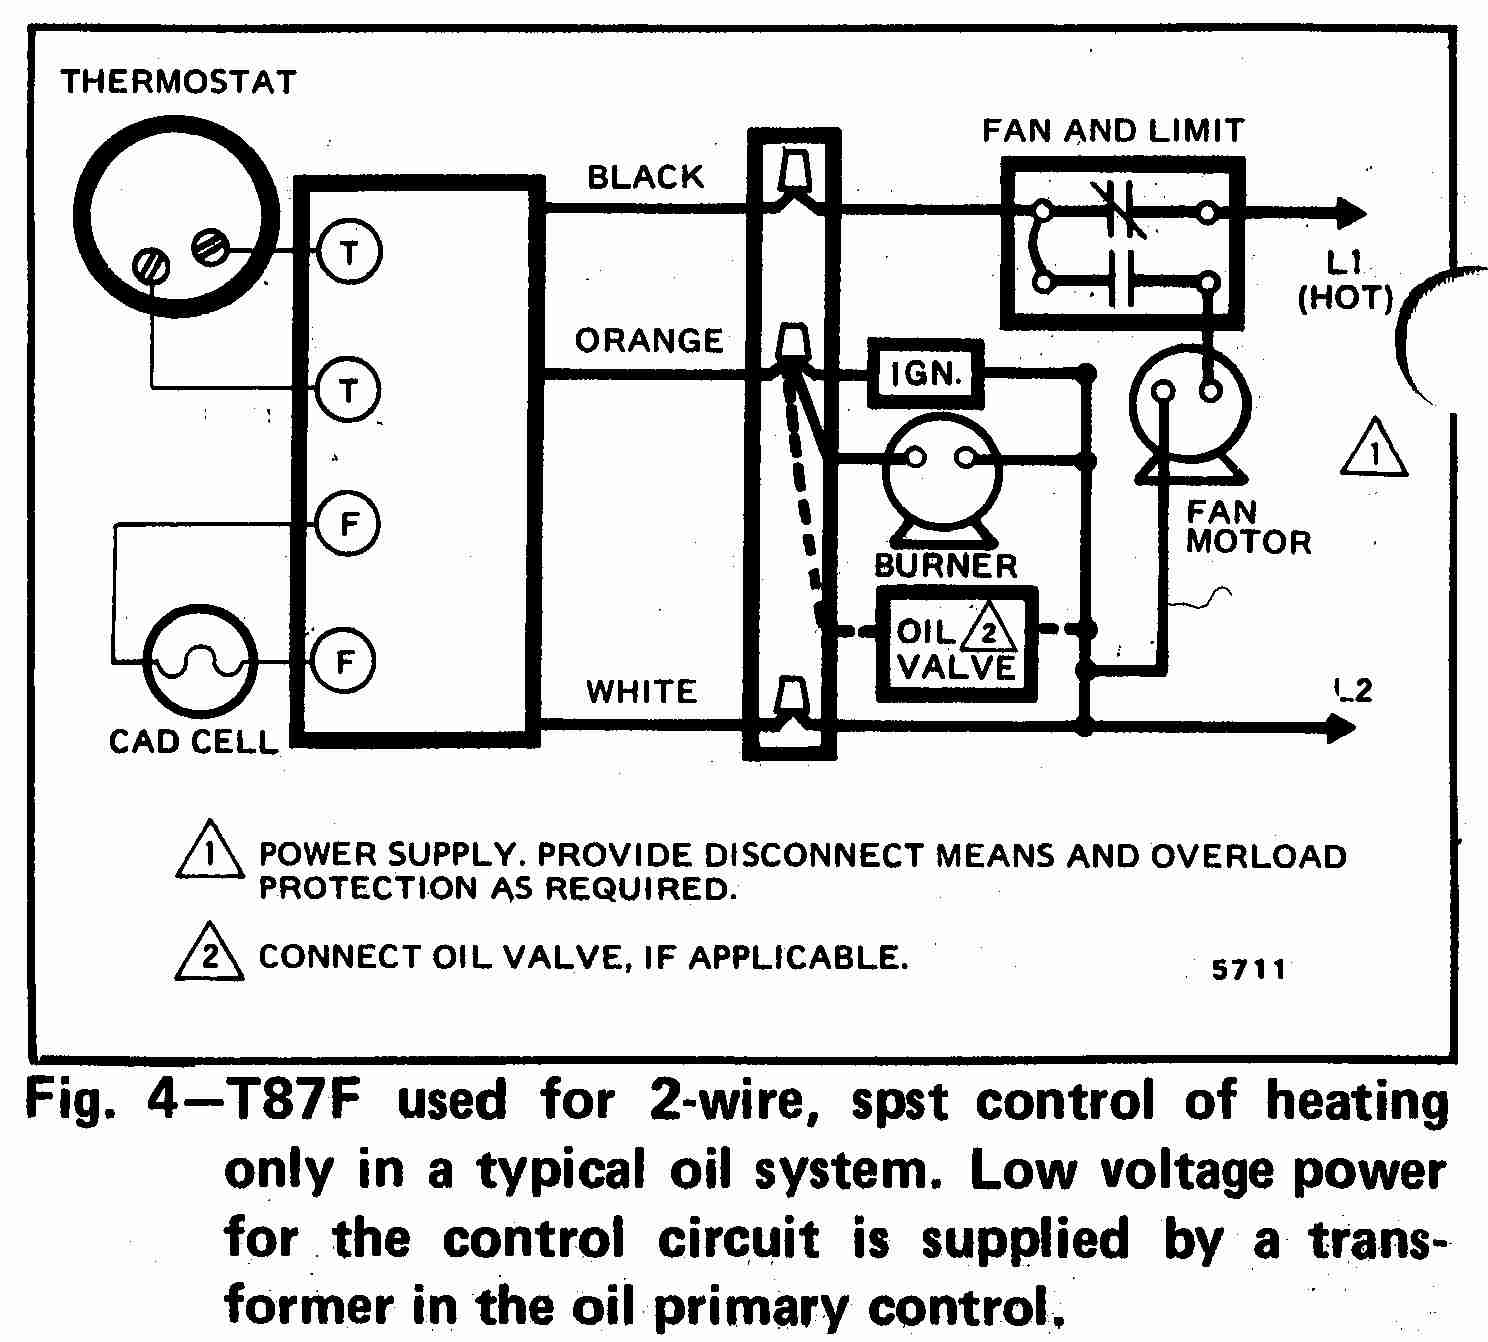 TT_T87F_0002_2W_DJF room thermostat wiring diagrams for hvac systems thermostat wiring diagram 5 wire at bayanpartner.co